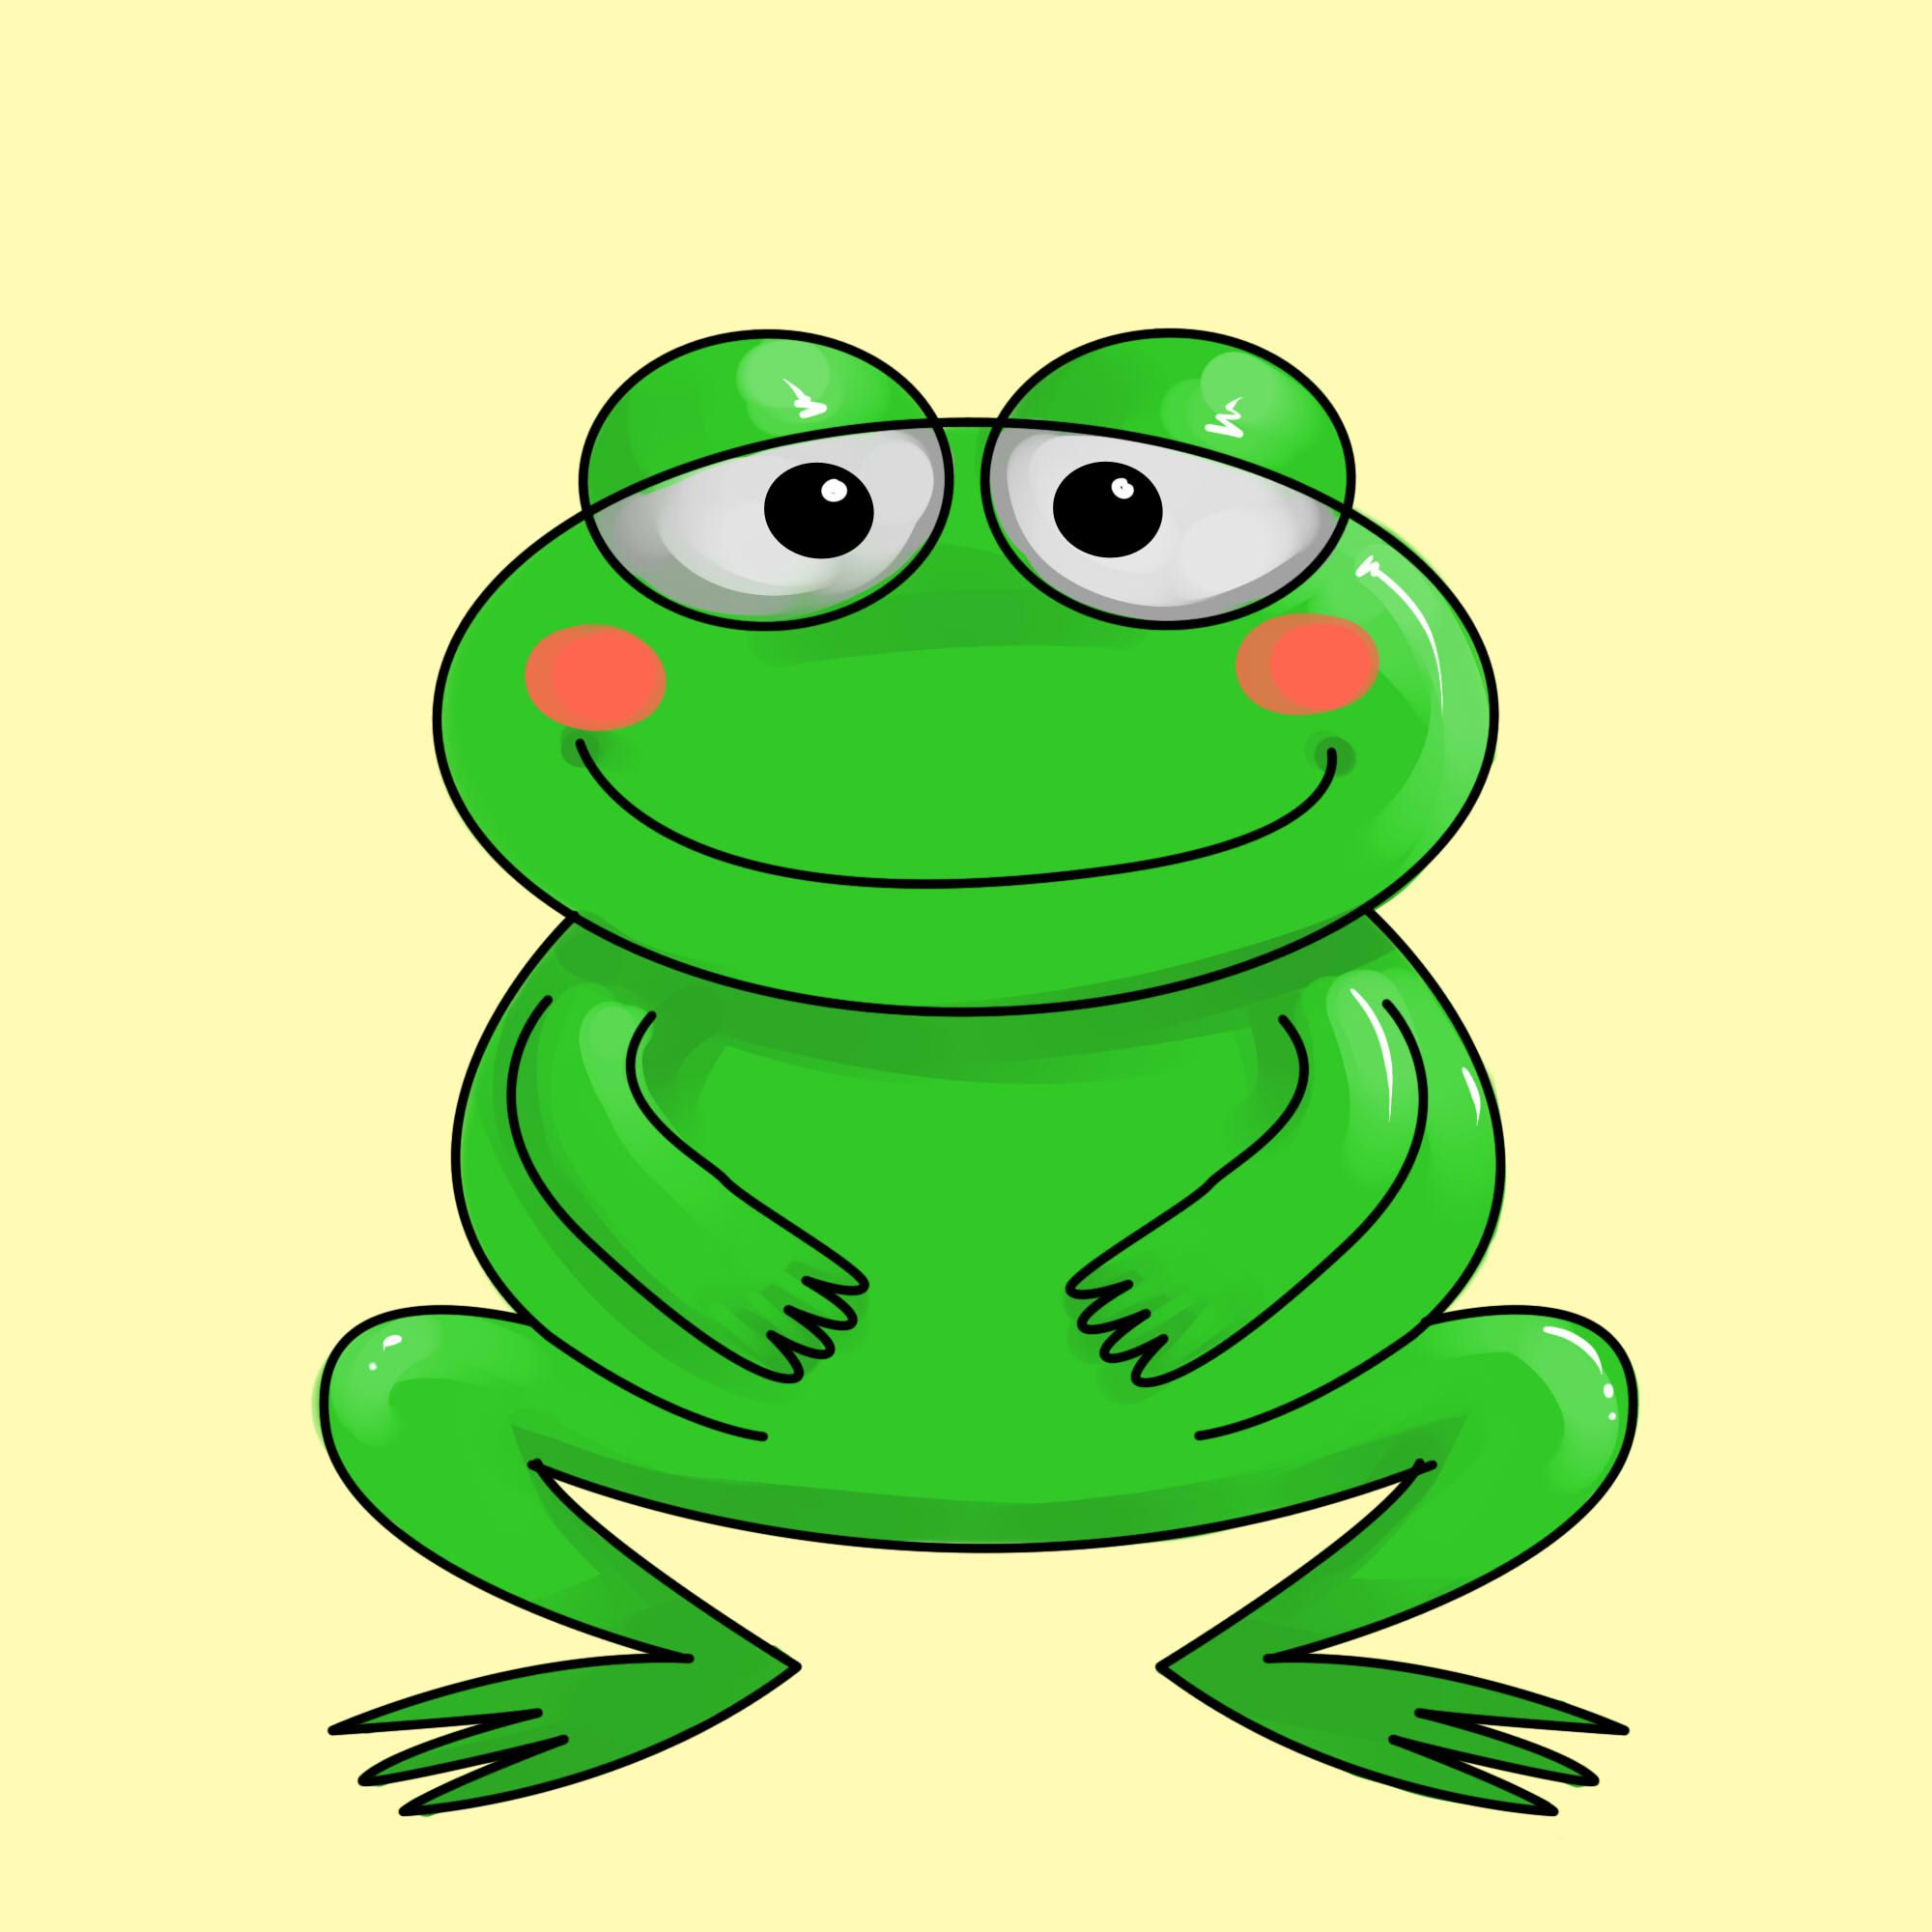 draw a cartoon frog frogs cartoon and snail